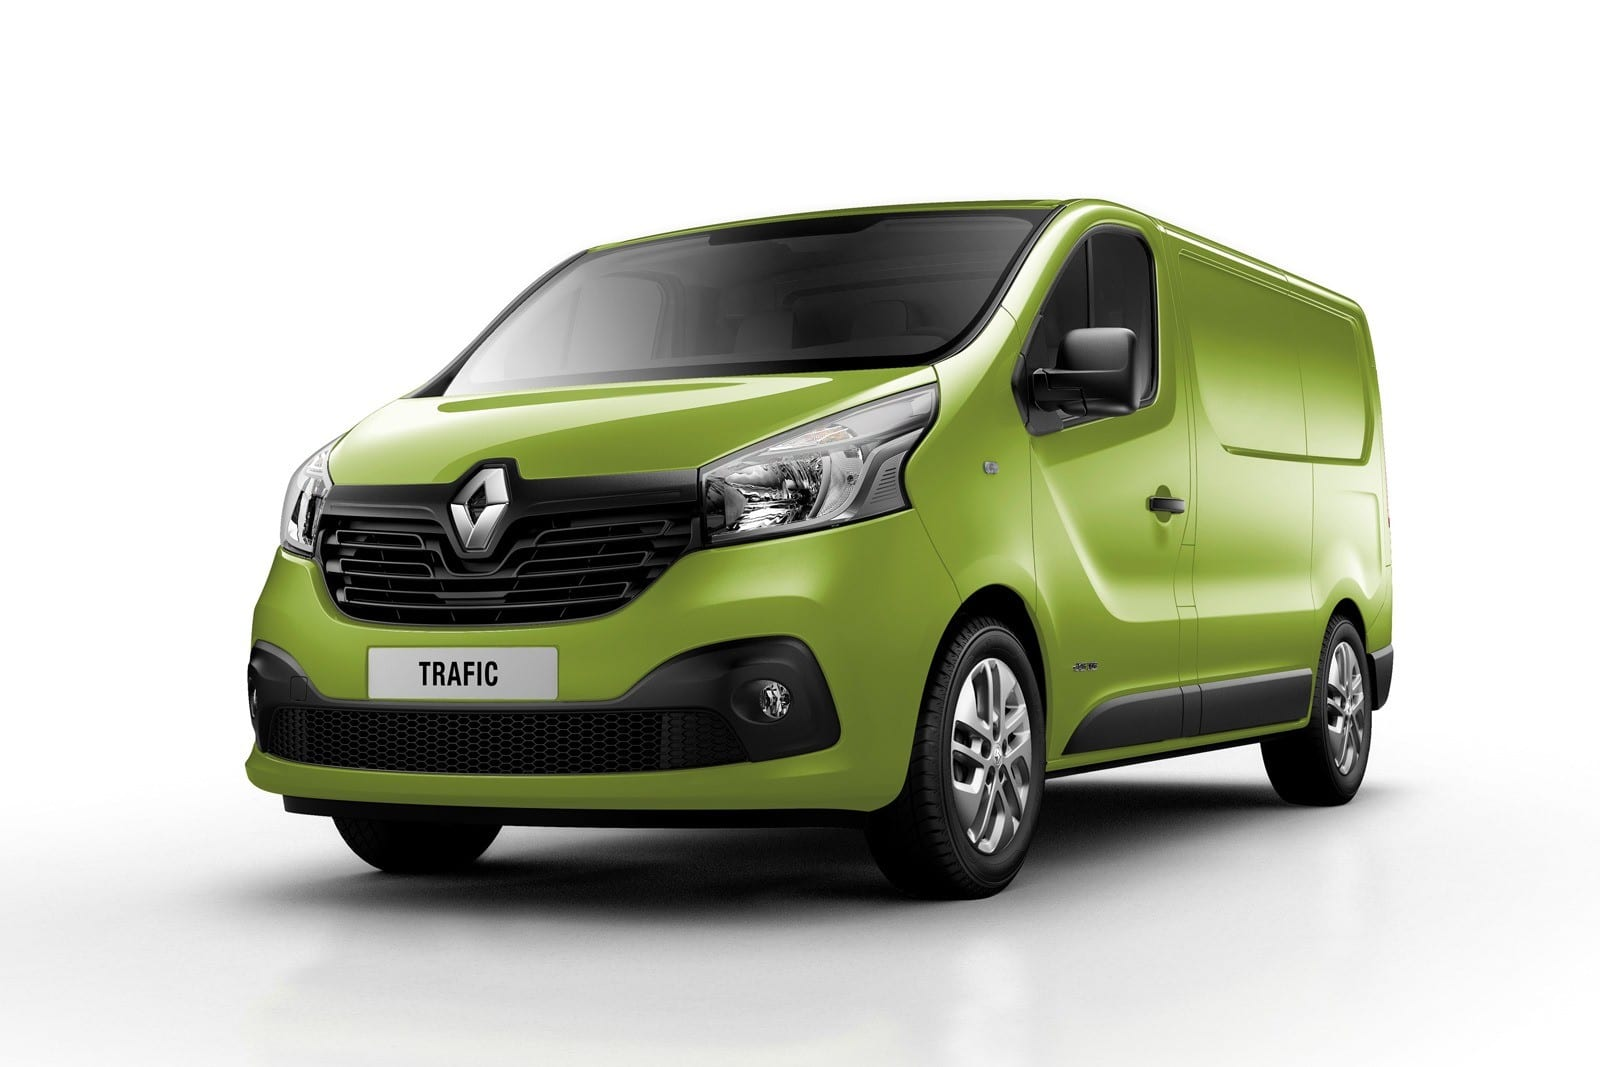 voici les nouveaux renault trafic opel vivaro 2014. Black Bedroom Furniture Sets. Home Design Ideas